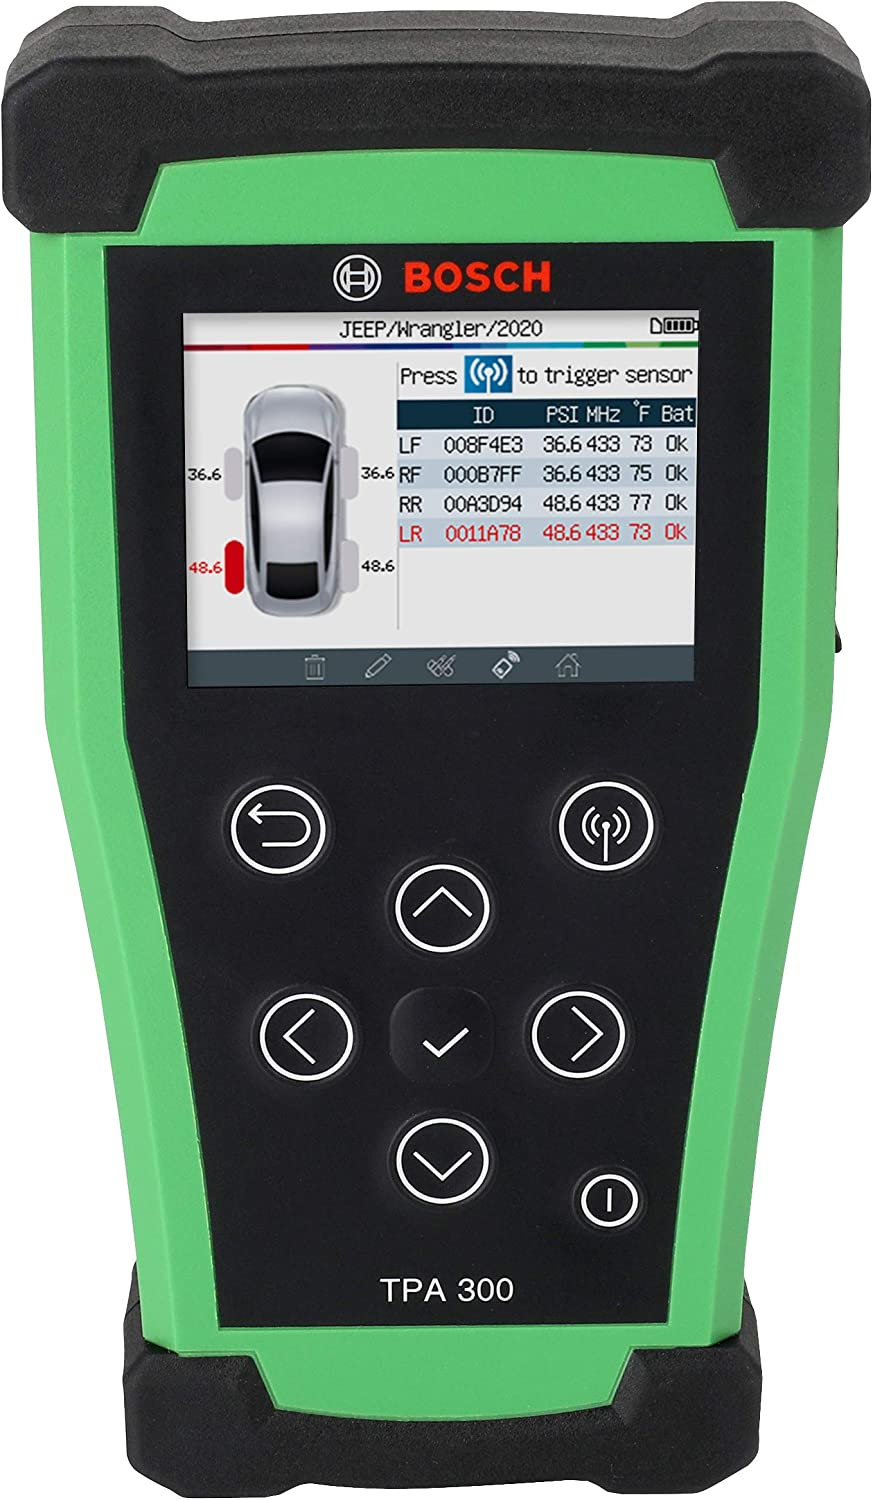 BOSCH Jacksonville Mall 3934 TPA 300 TPMS Programming T Reset Activation Fixed price for sale and ECU